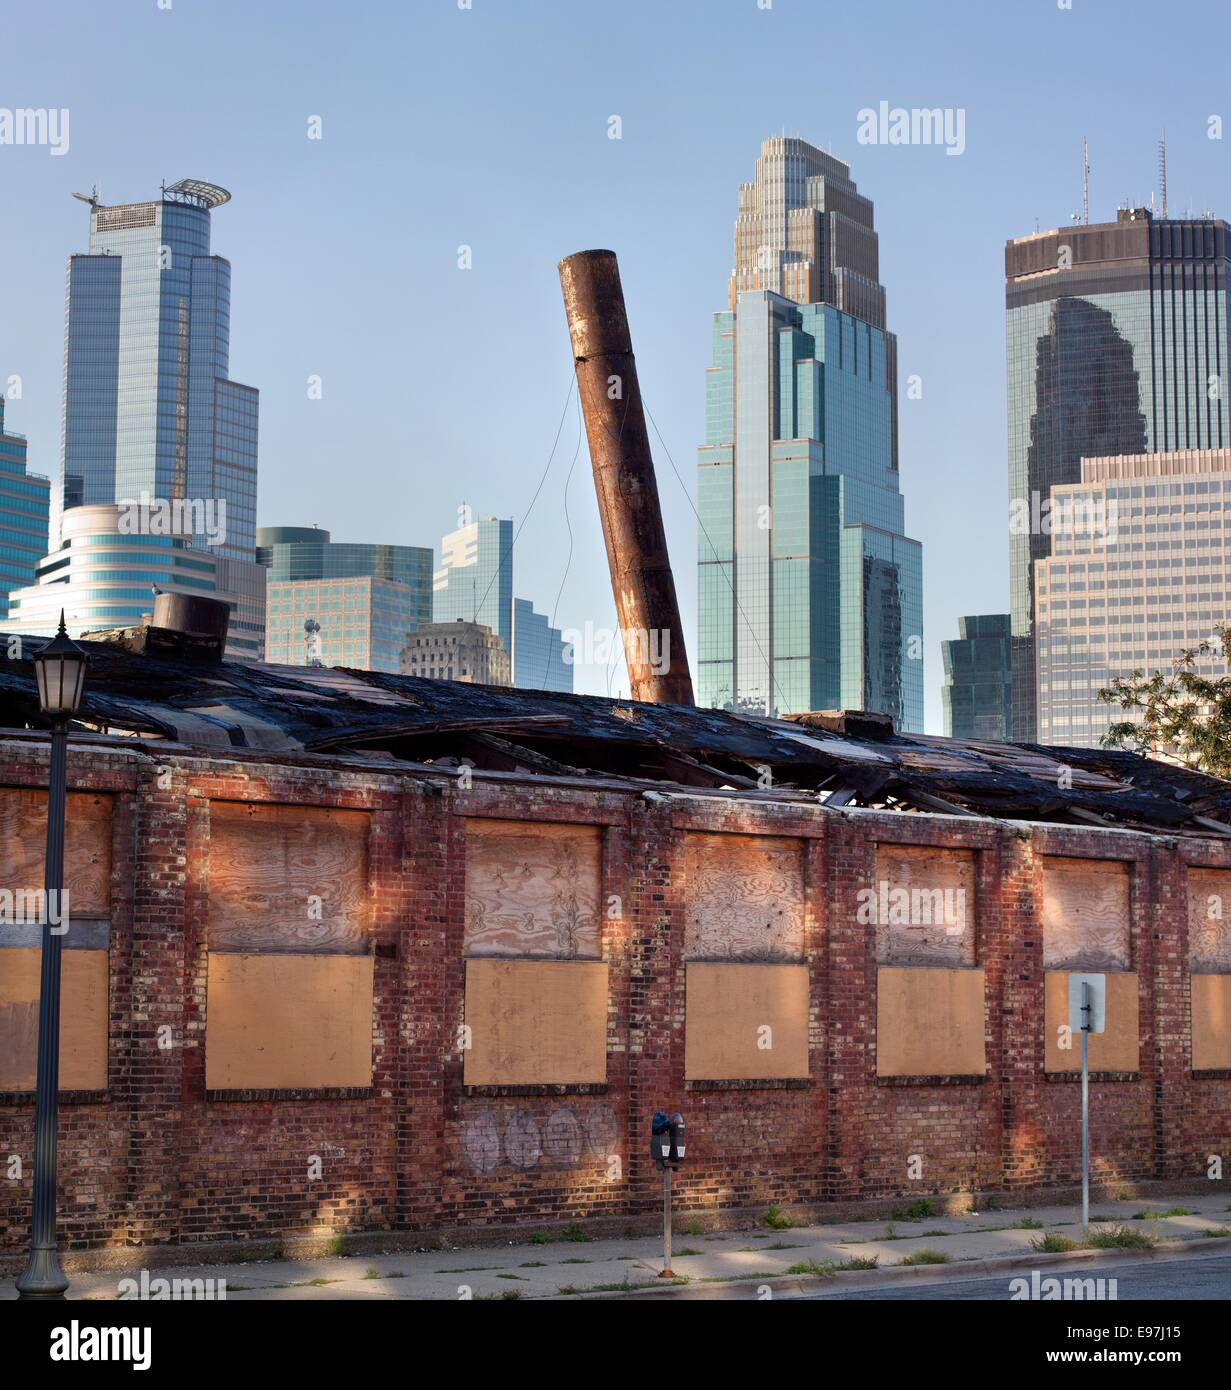 Old brick building with leaning smokestack in the historic Warehouse District with skyscrapers of downtown Minneapolis, - Stock Image